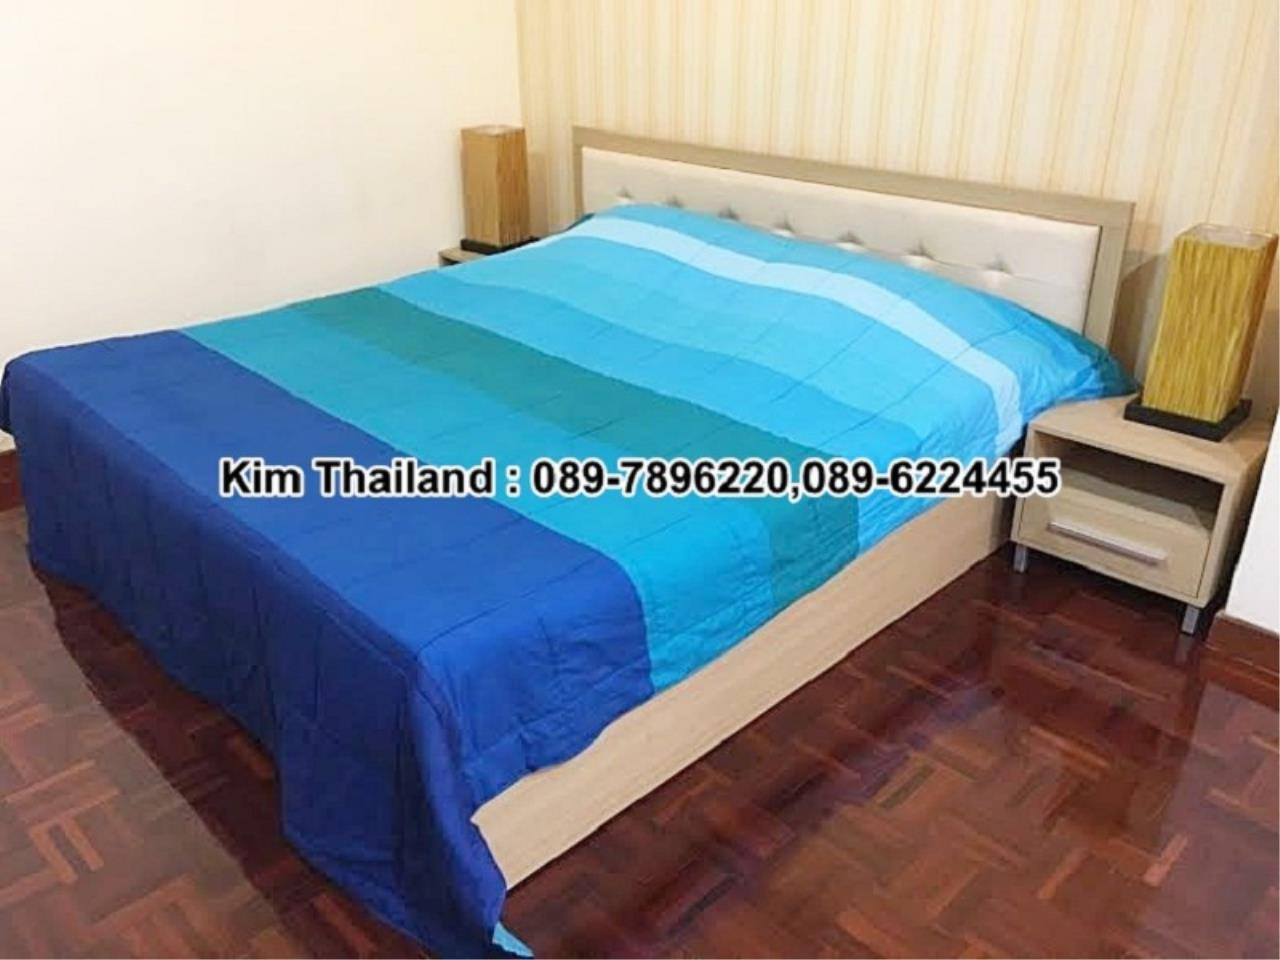 BKKcondorental Agency's For rent, Condo Saranjai Mansion. Area 63 sq.m. 1 bedroom. Rent 20,000baht/month 3